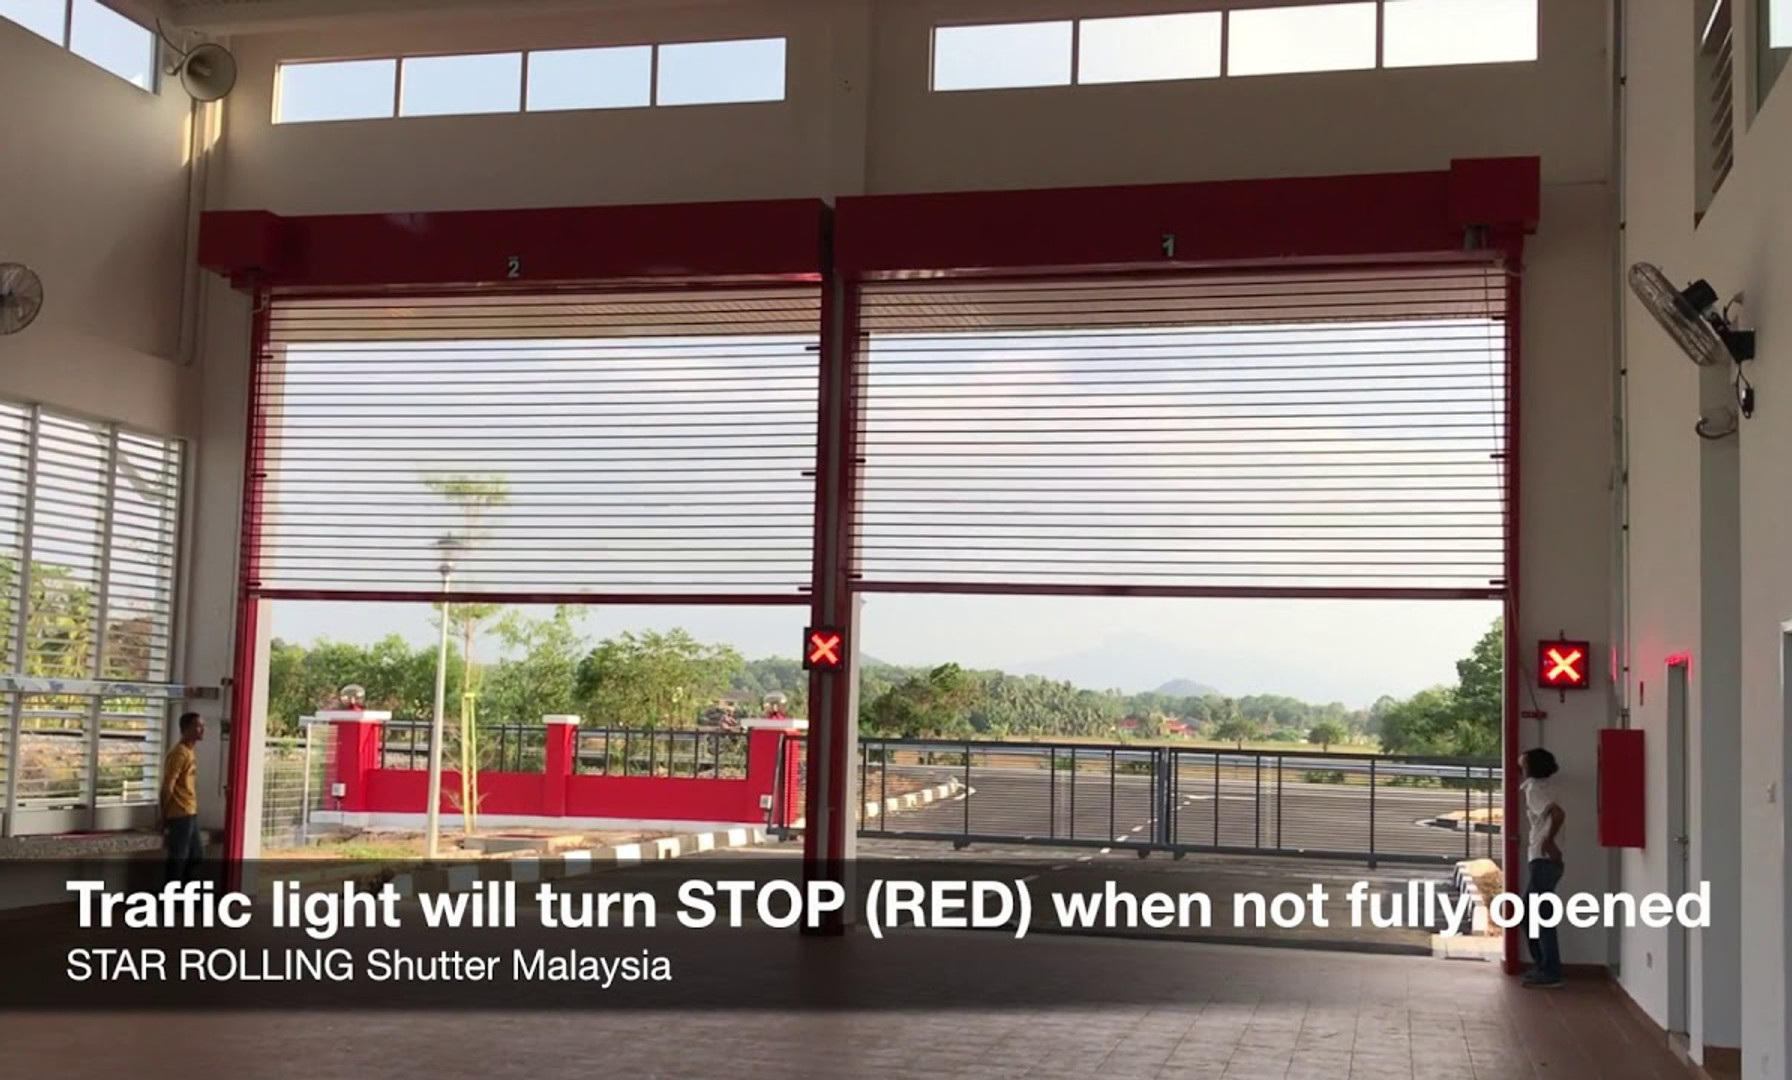 STAR ROLLING ClearVision® Transparent Shutter @ BOMBA Fire Station Malaysia